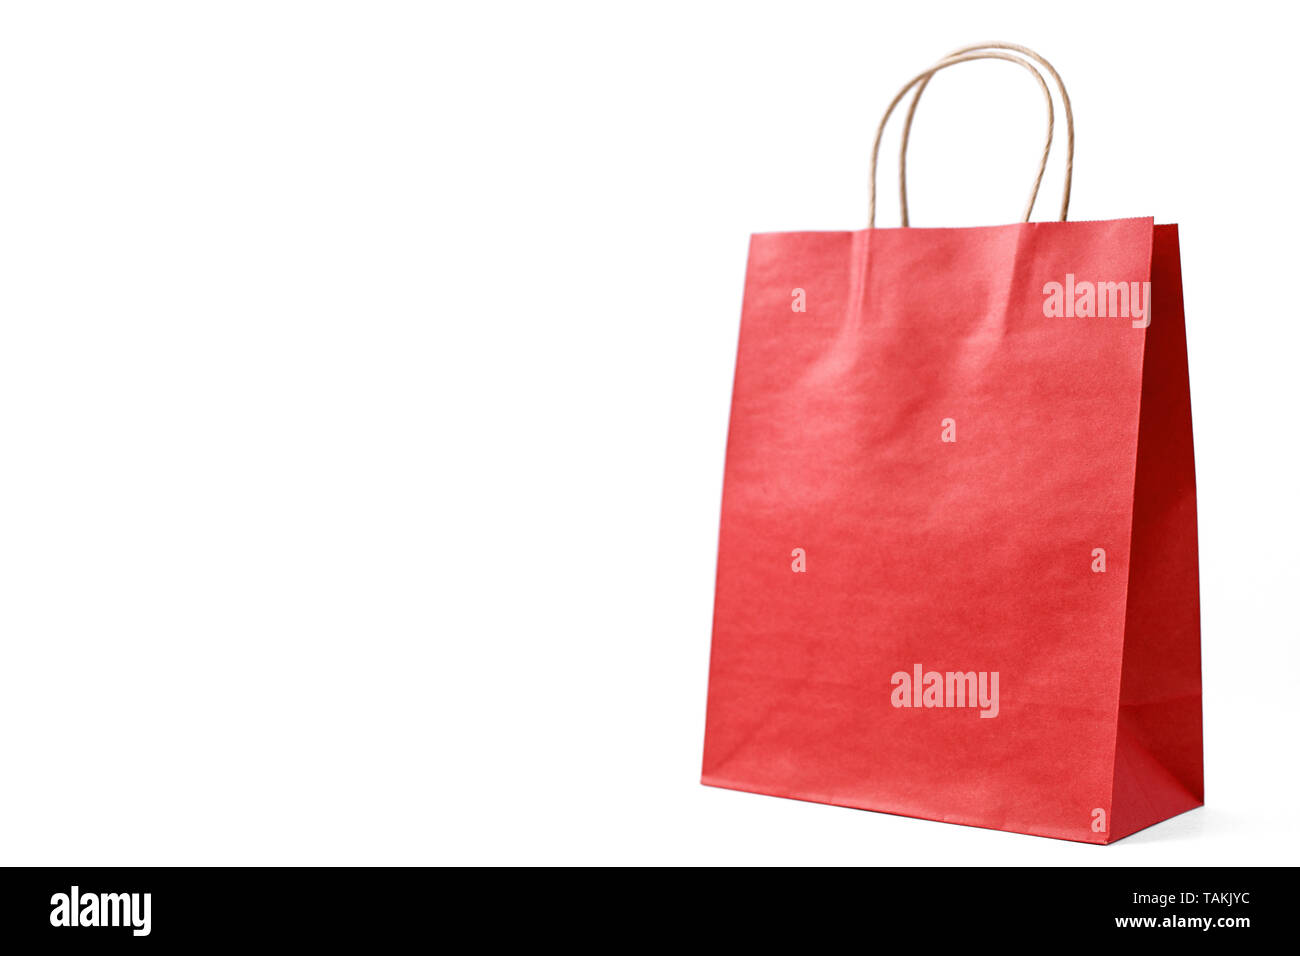 environmentally friendly cardboard red bags on white isolated background - Stock Image